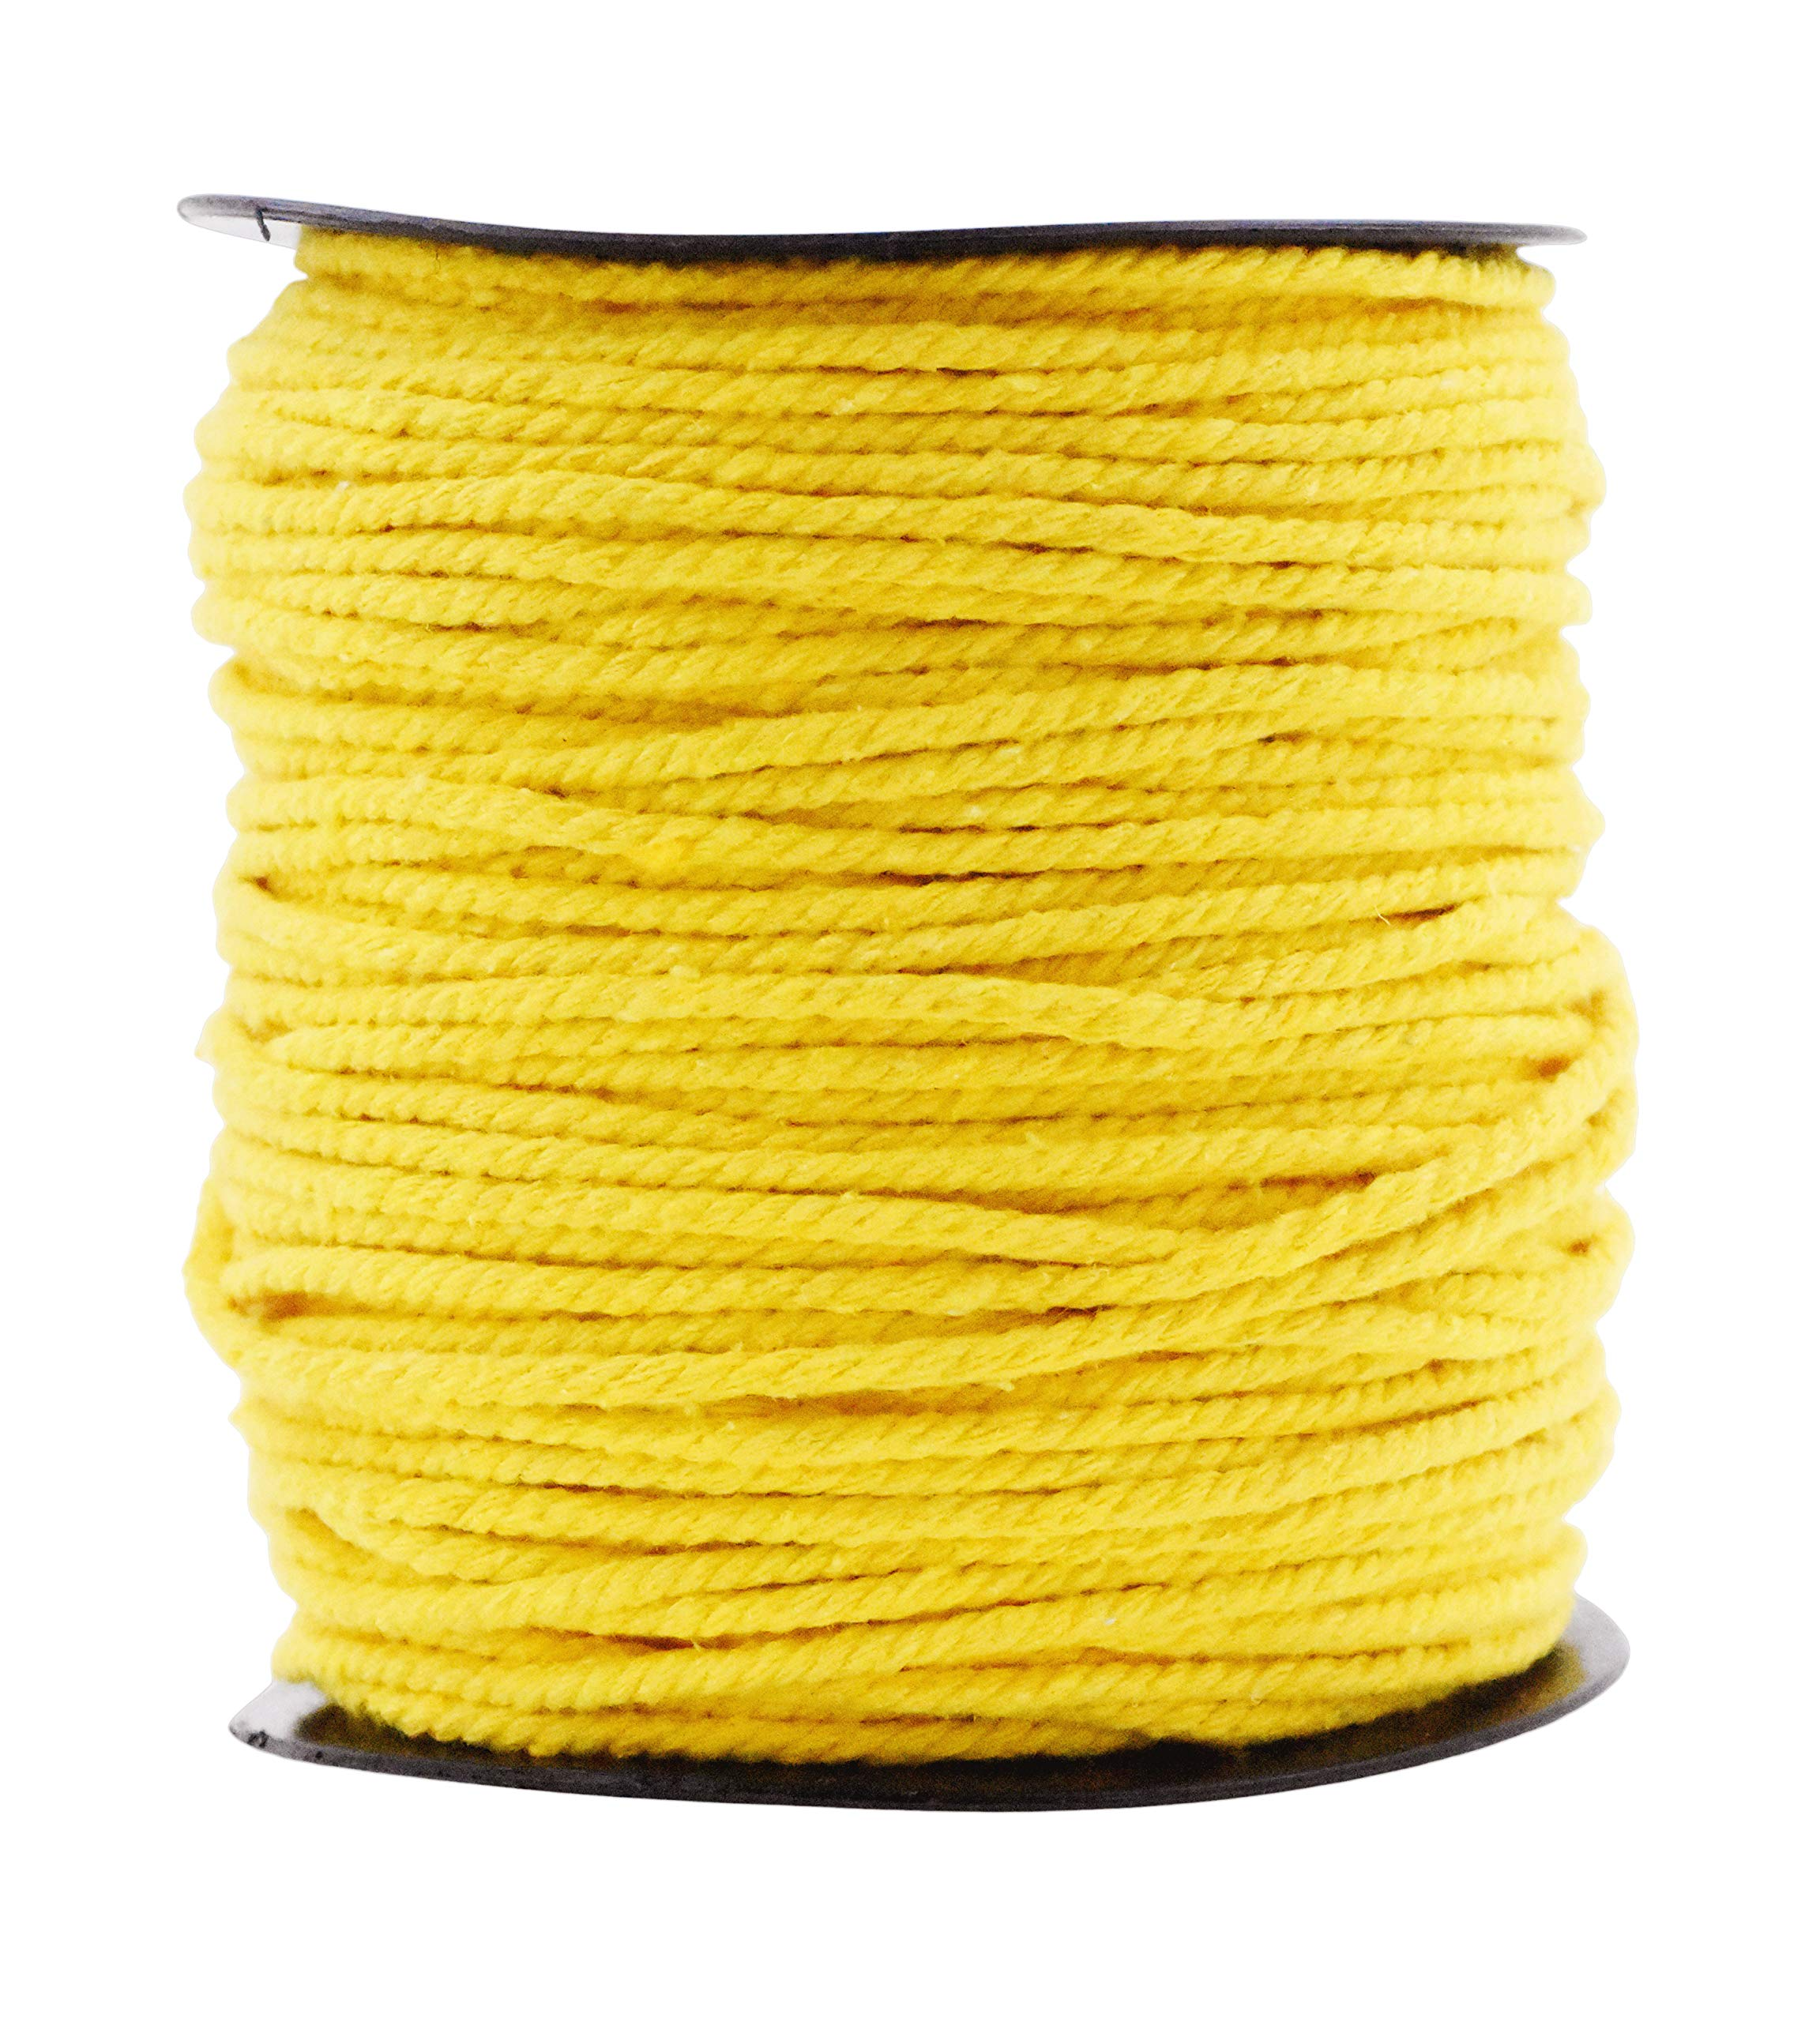 Macrame Cord Cotton Rope Macrame Supplies 3 Ply Twisted Macrame Rope String Yarn for Plant Hanger Wall Hanging Knitting Wedding Décor by Mandala Crafts Yellow 3mm 109 Yards